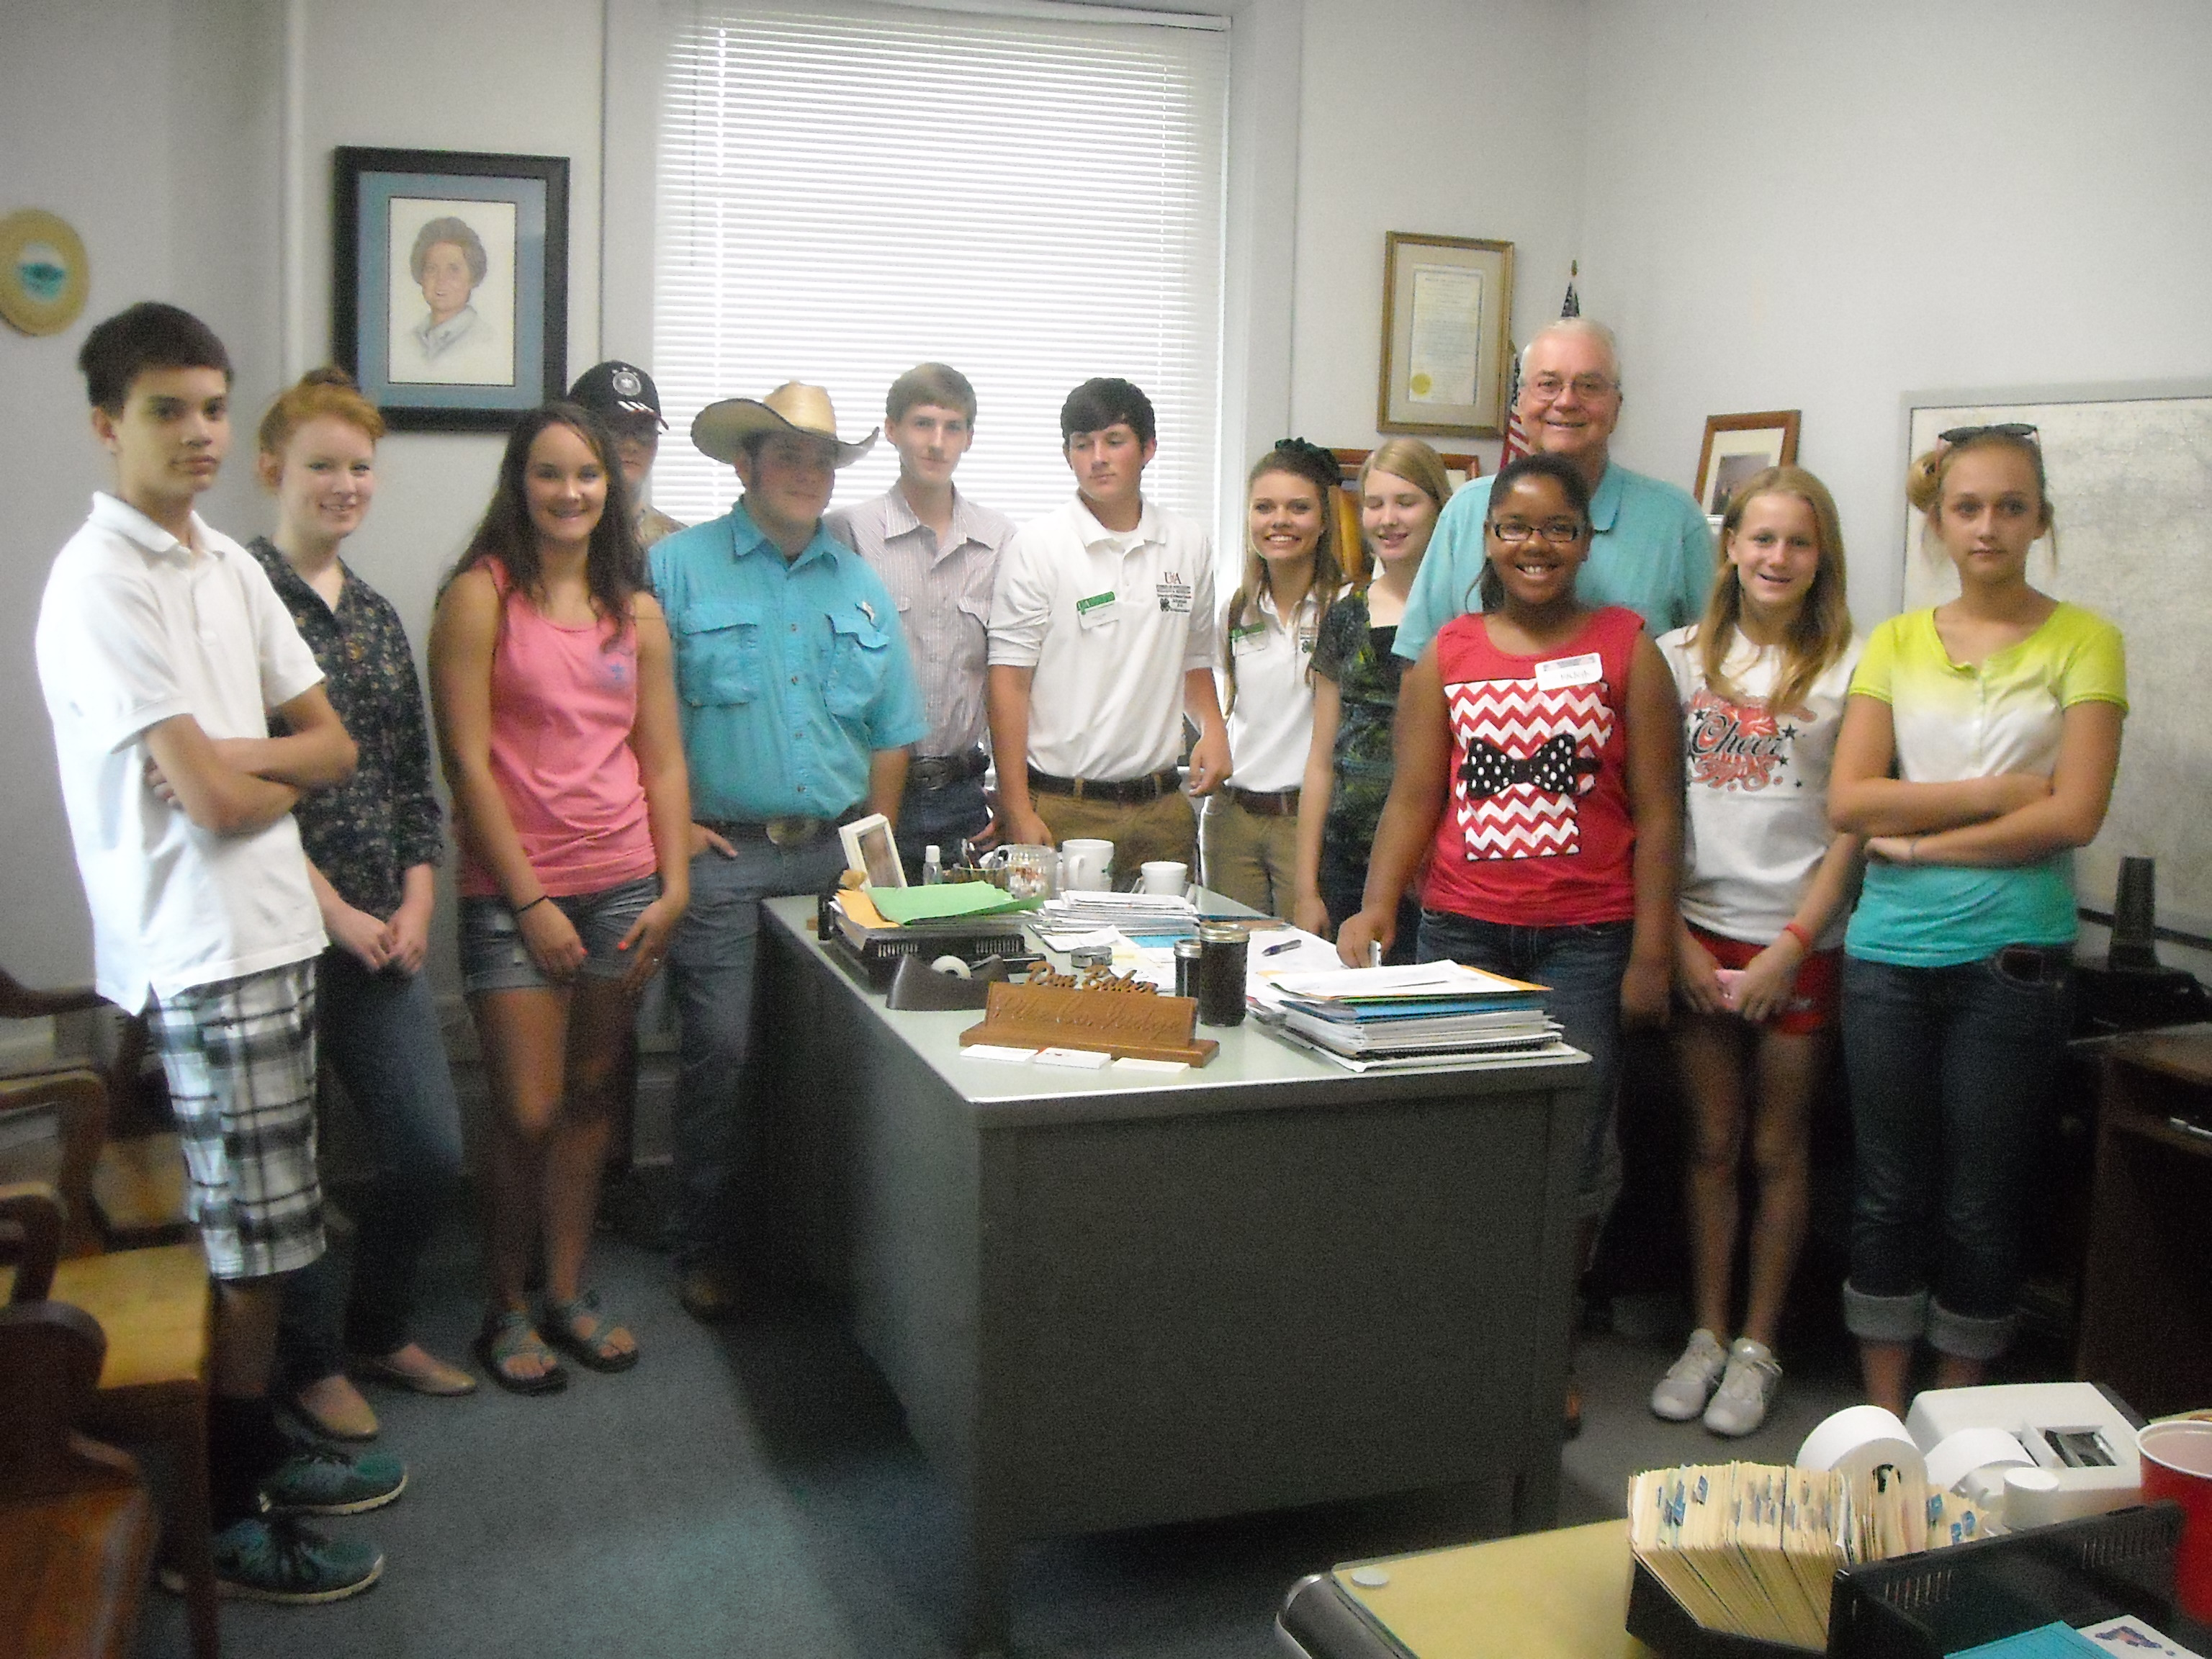 Pike County Judge Don Baker, with 4-H youth at the Pike County Courthouse during Citizenship Leadership Day.